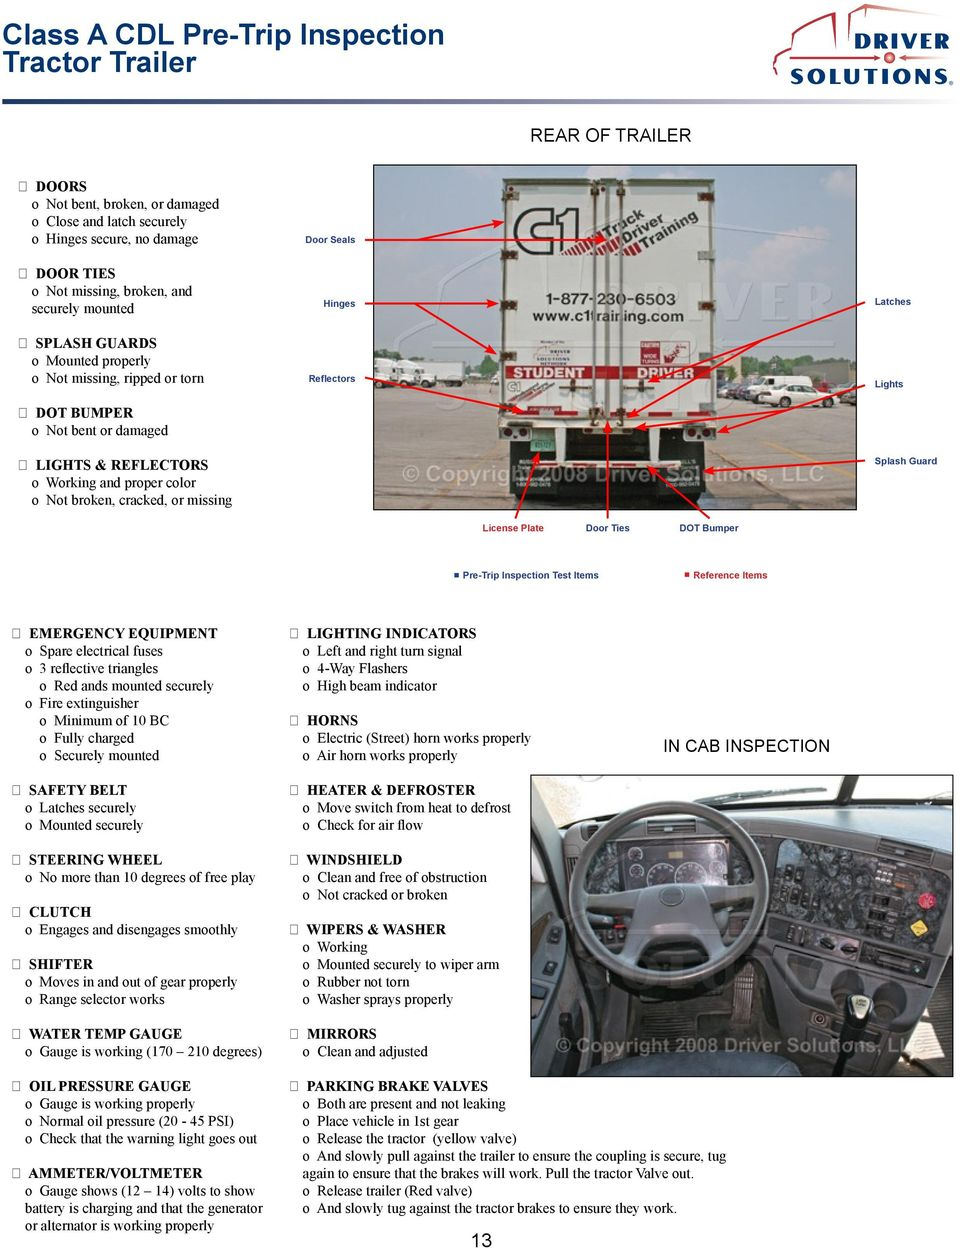 Class A Cdl Pre Trip Inspection Tractor Trailer Pdf 04 Duramax Fuel Filter Housing Dot Bumper Emergency Equipment O Spare Electrical Fuses 3 Reflective Triangles Red Ands Mounted